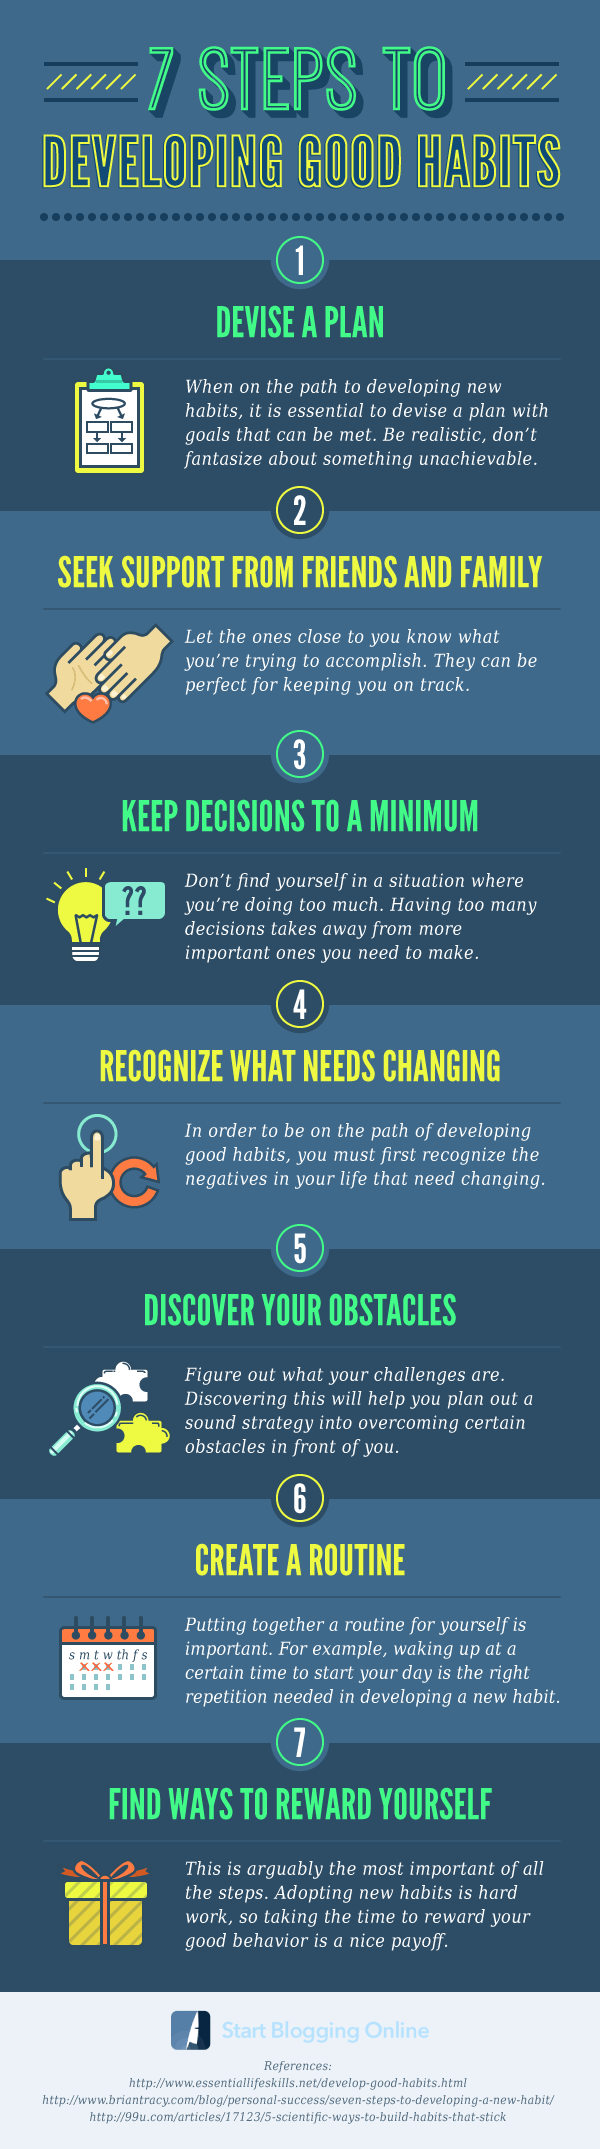 7 Amazing Steps To Developing Good Habits